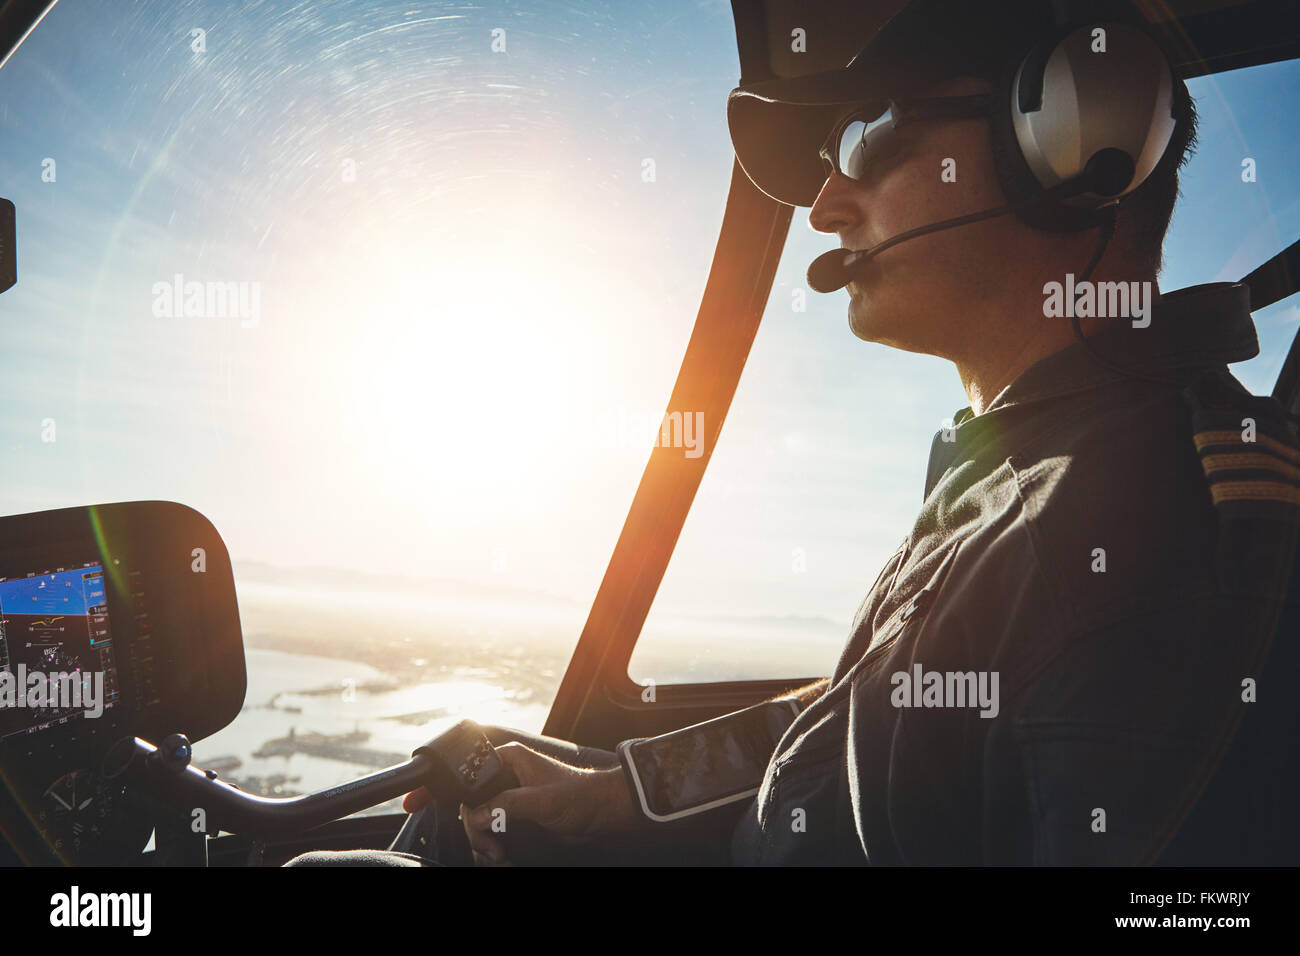 Close up of a pilot flying a helicopter with sun flare entering the cockpit. - Stock Image